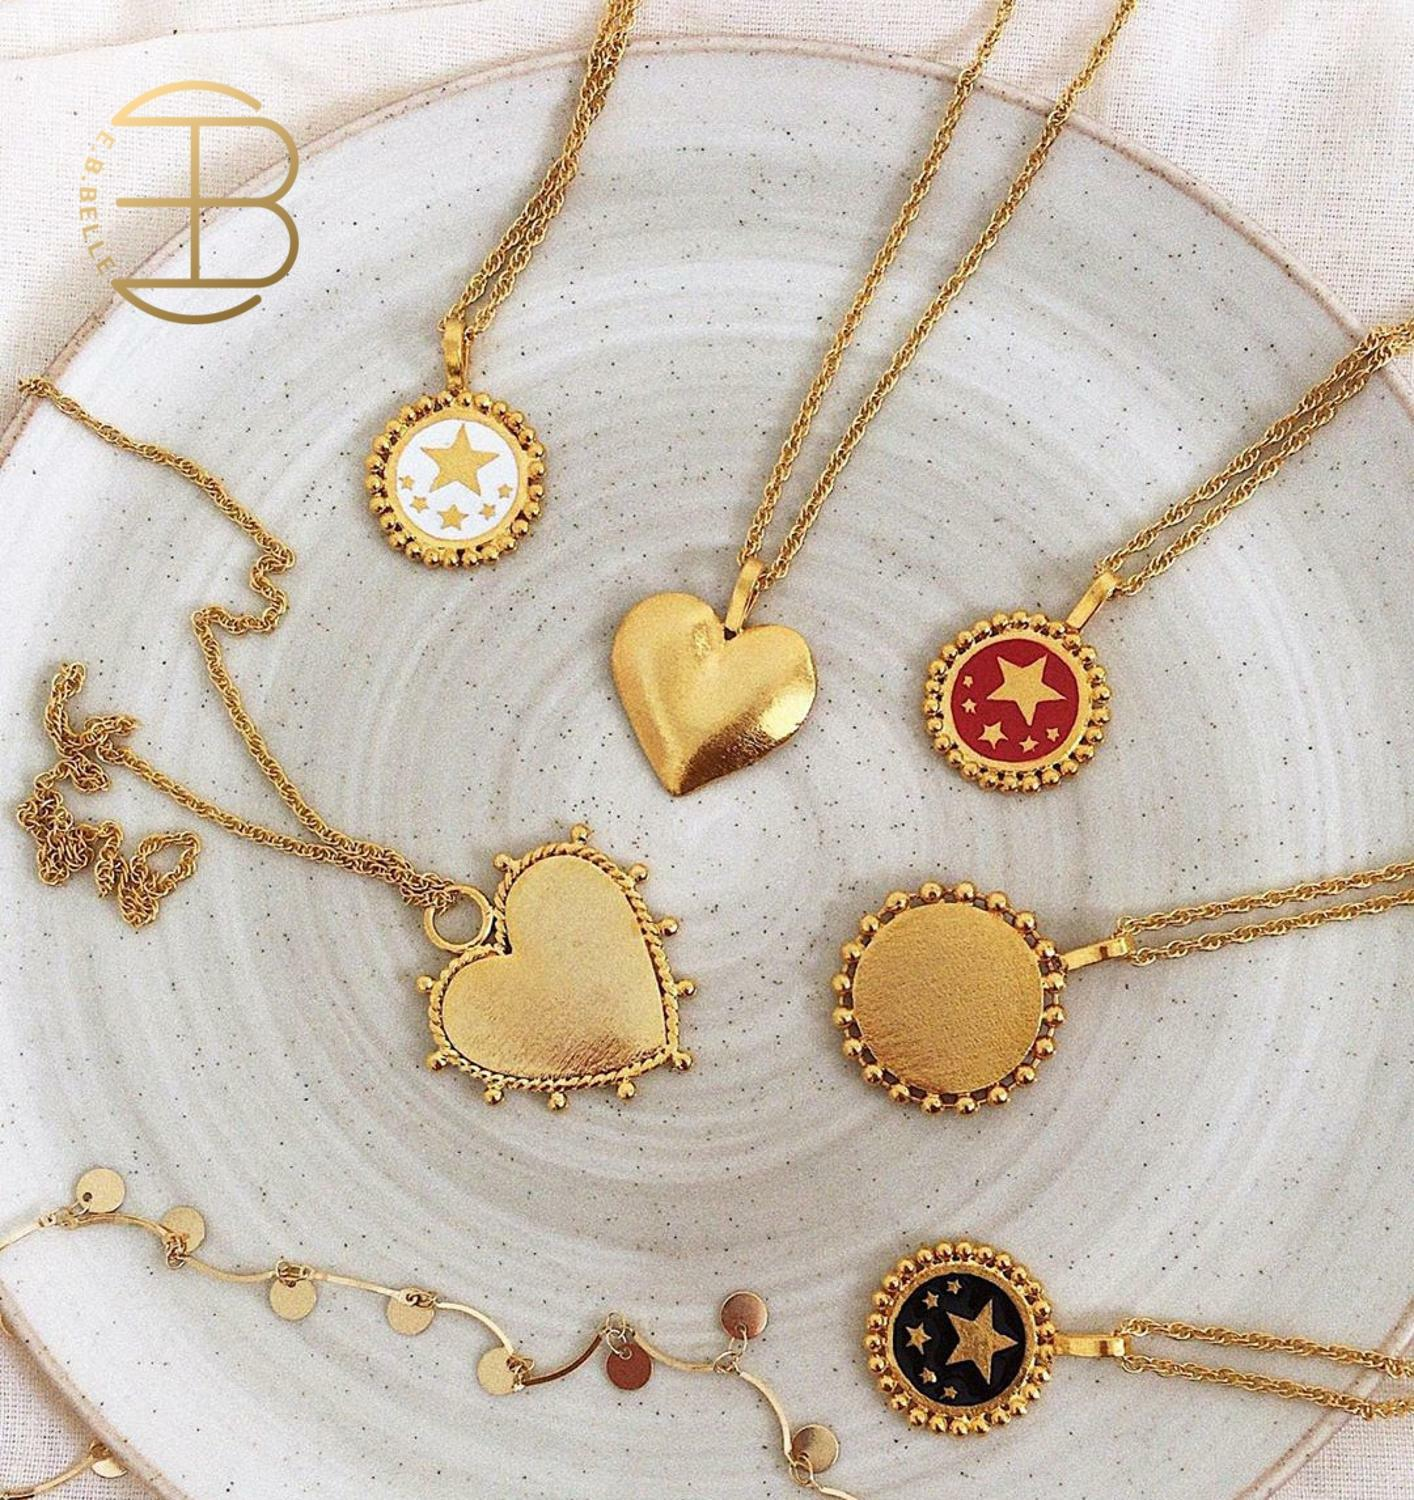 2020 New Red White Black Enamel Star Pattern Gold Coin Necklace For Women Ladies Heart Pendant Necklaces Jewelry Accessories